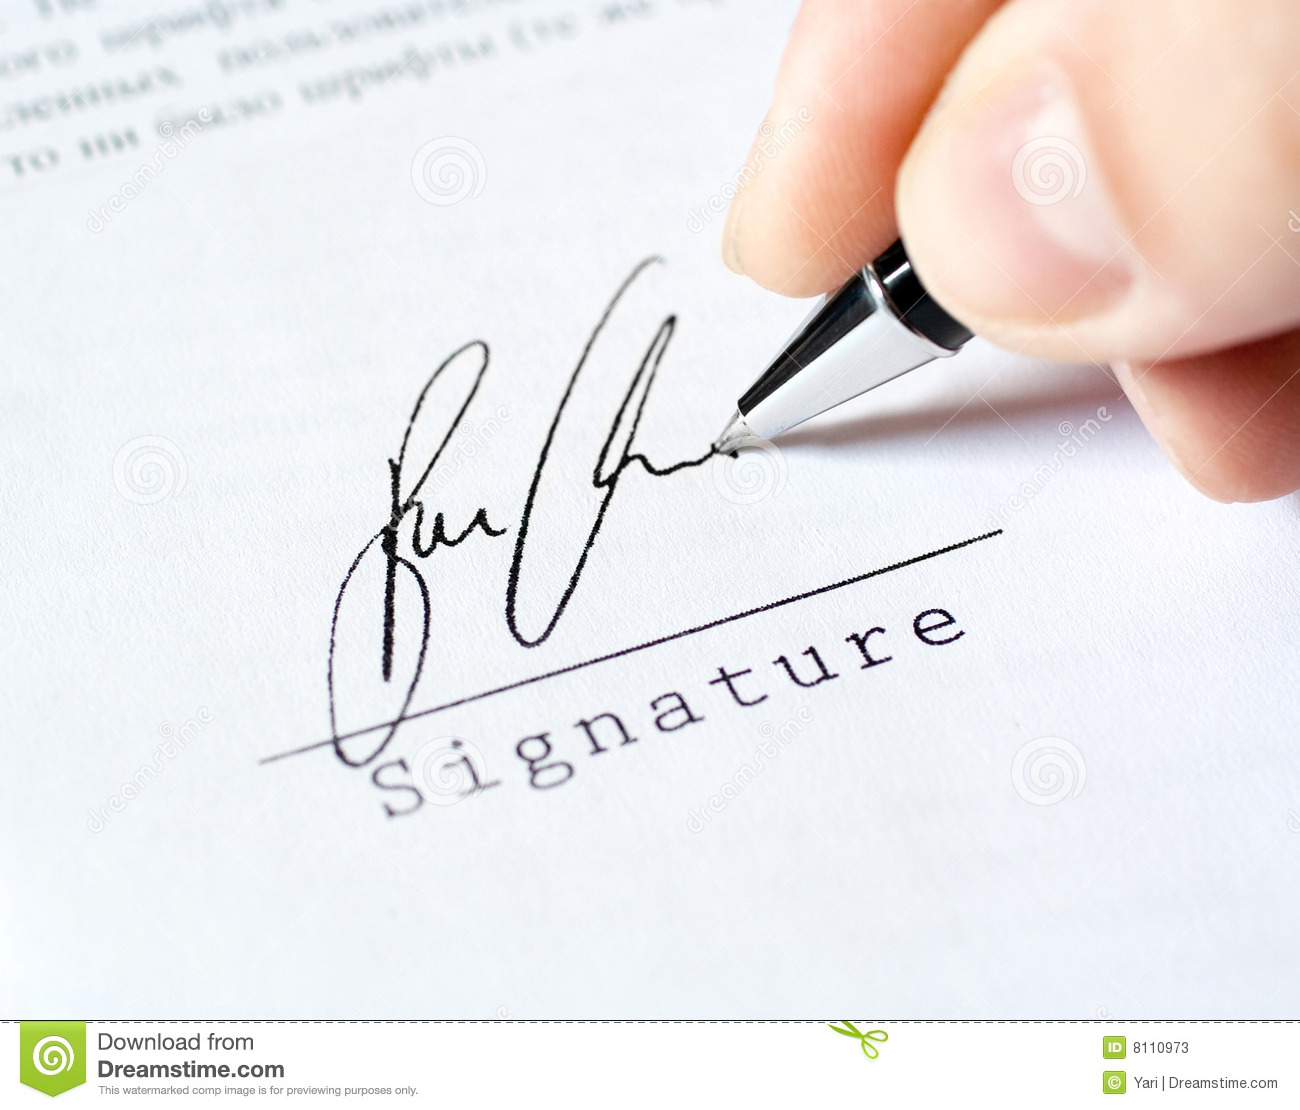 executive desk plans with Stock Photos Pen Work Hand Work Signature Image8110973 on Stock Photos Pen Work Hand Work Signature Image8110973 together with Royalty Free Stock Images Male Receptionist Telephone Earpiece Image6603829 further Layout Of Ahkdeptwithexplanation as well Our Cabins as well 30 Farkli Home Ofis Masa Tasarimlari.